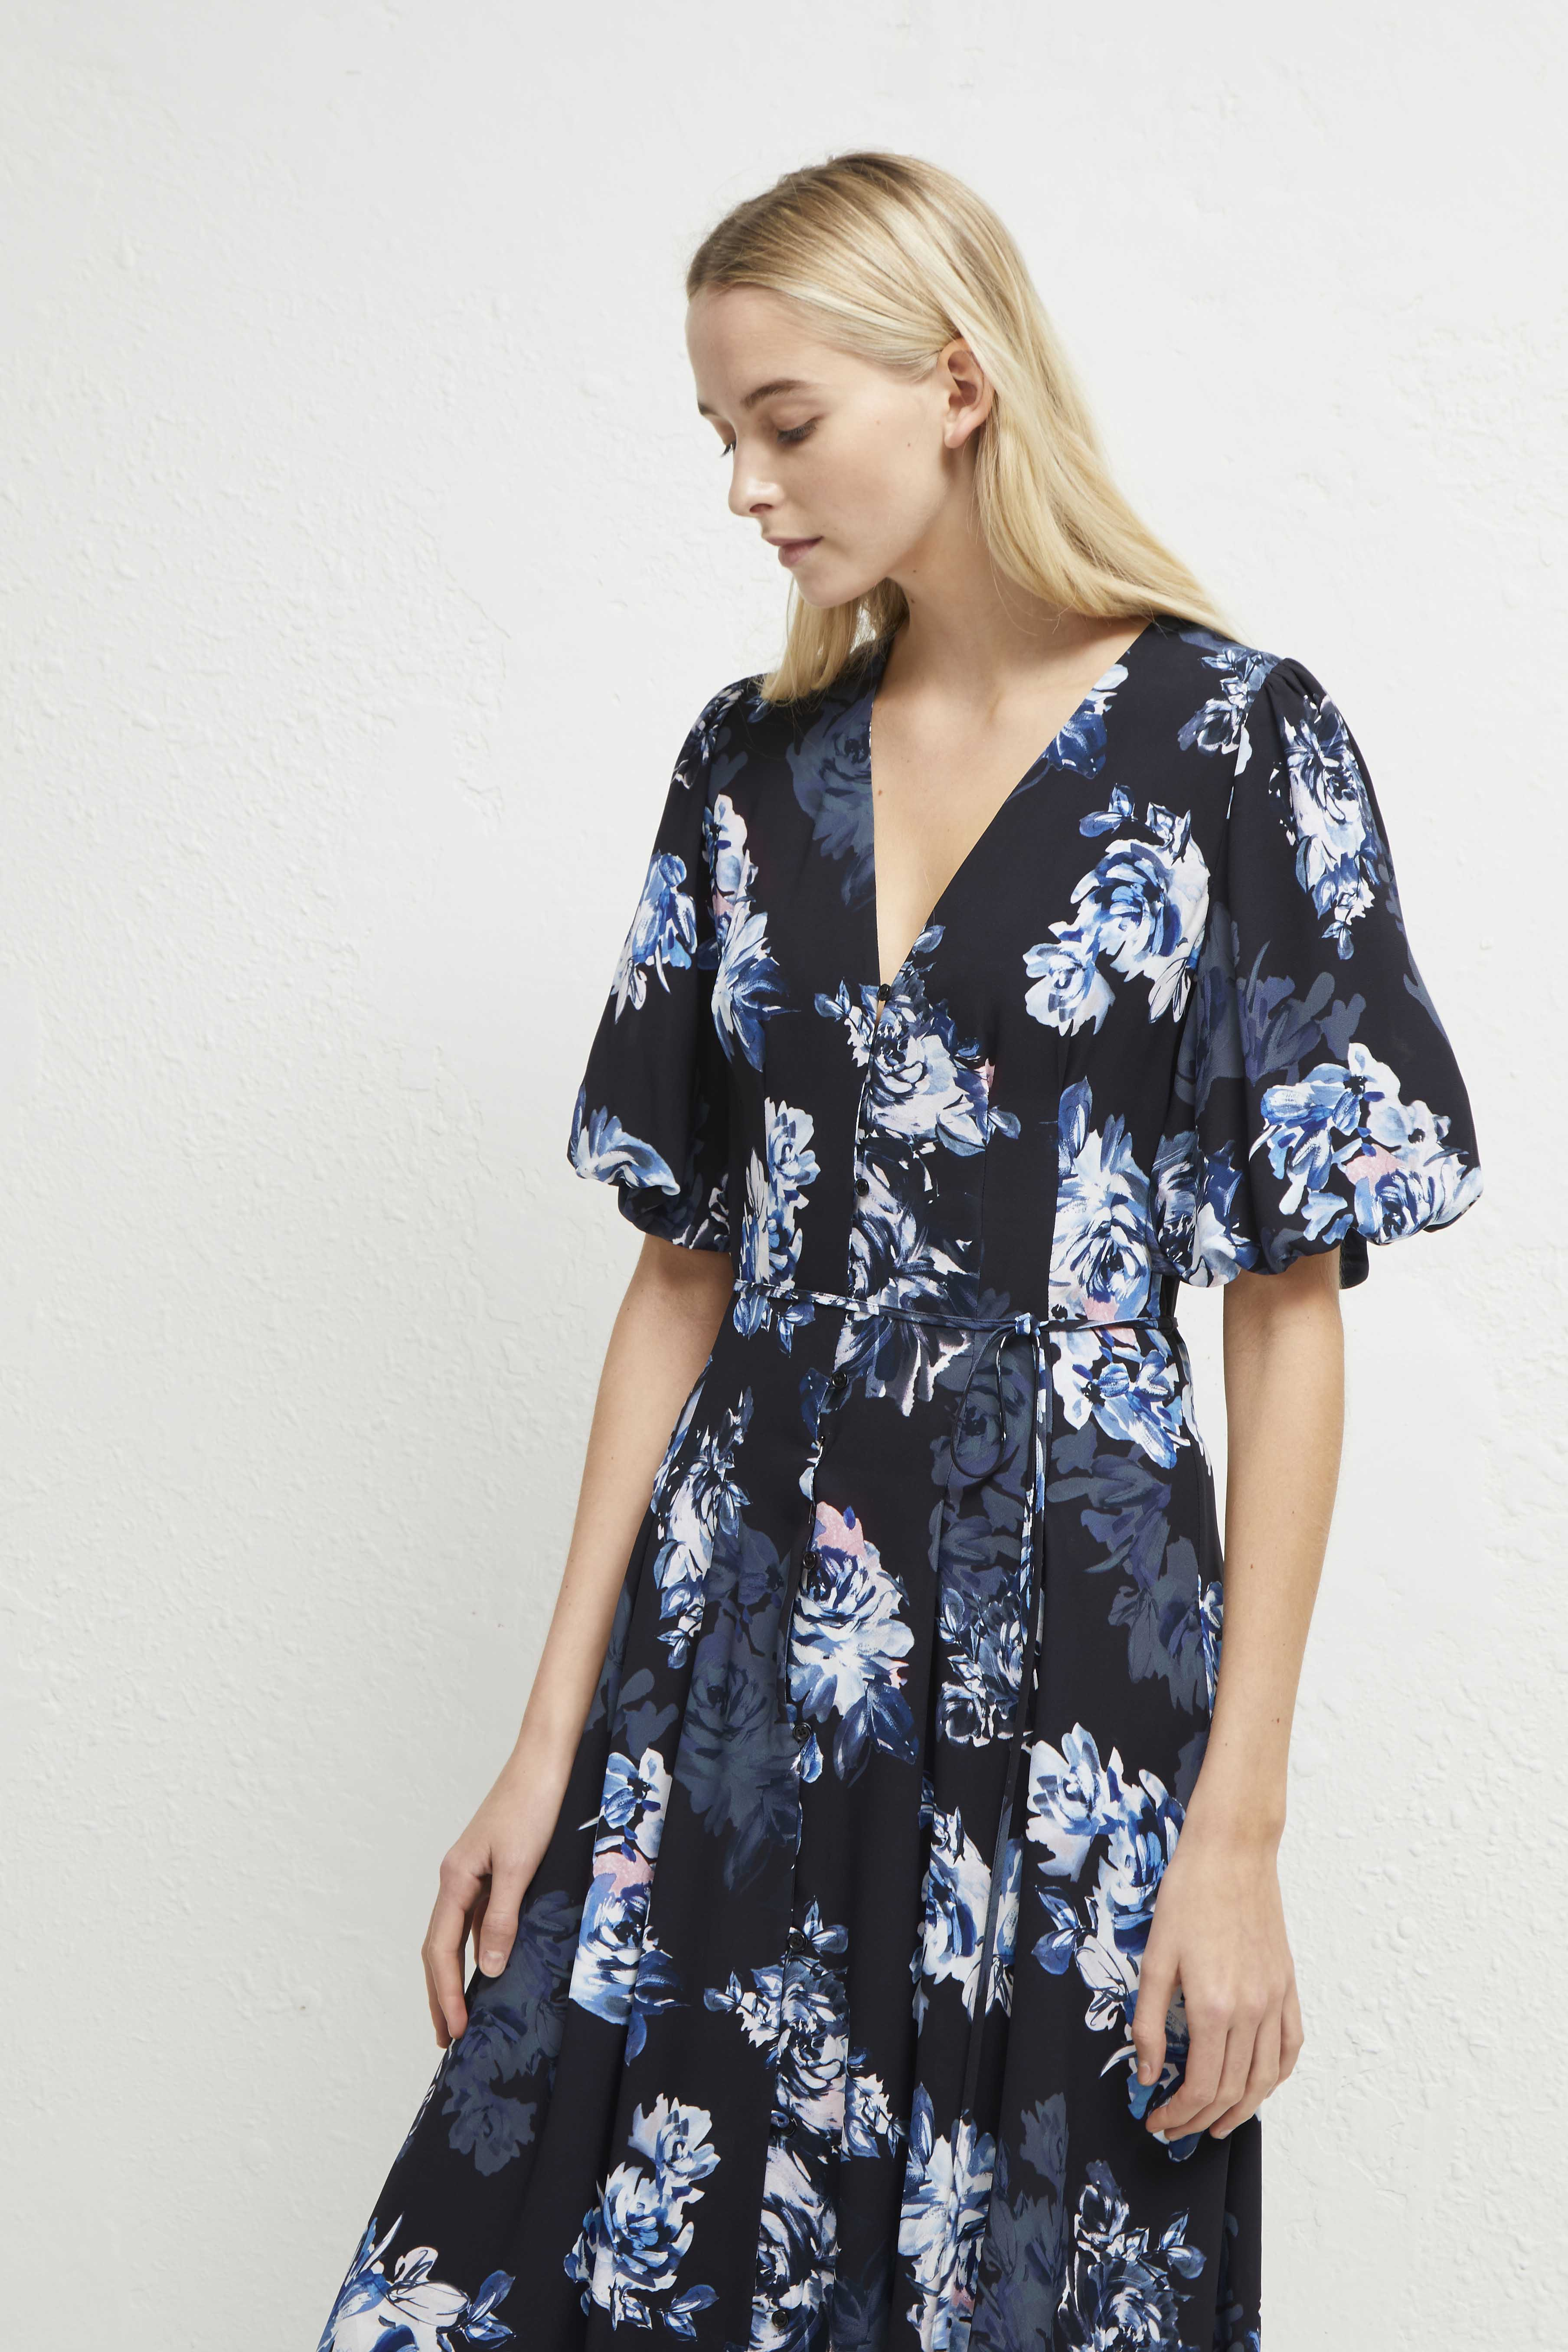 FRENCH CONNECTION CATERINA CREPE BUTTON DOWN FLORAL MIDI DRESS SIZE UK 10